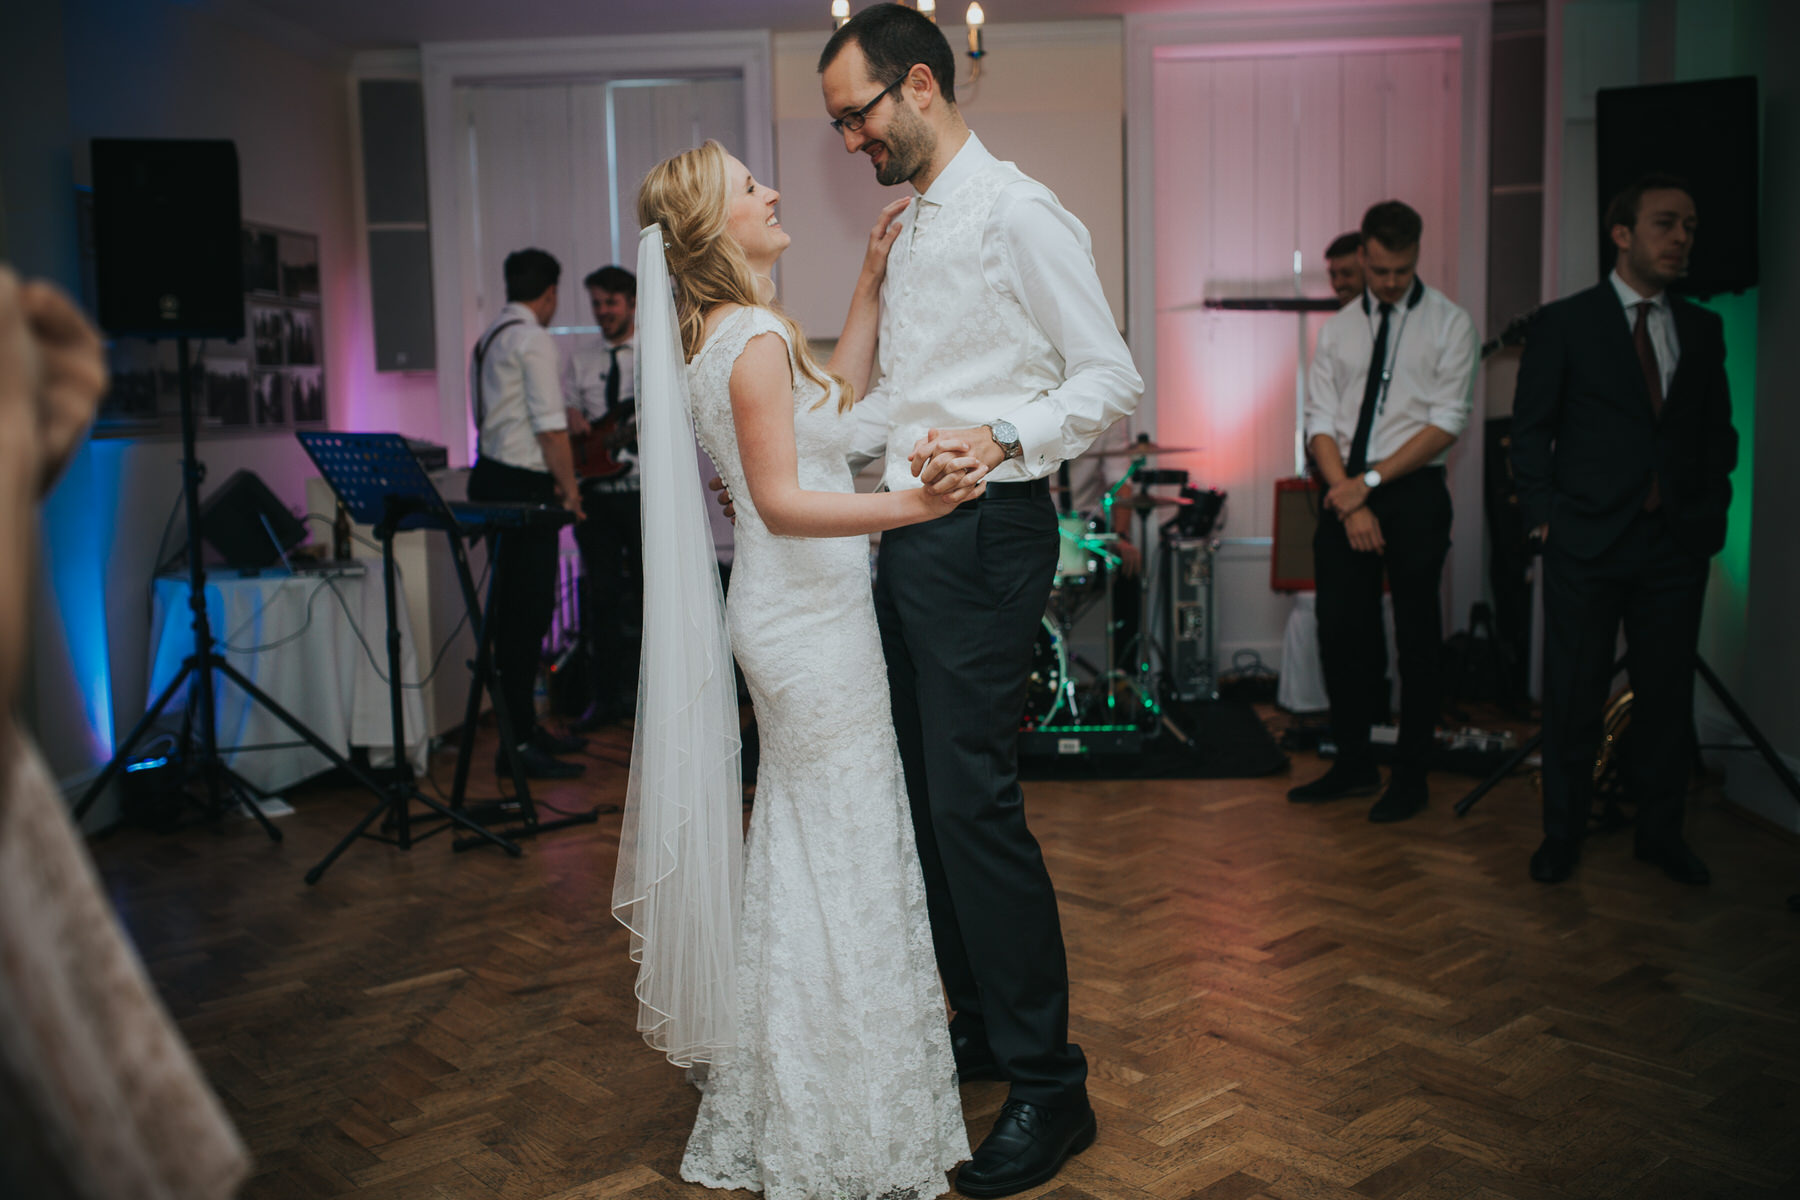 412-Pembroke Lodge wedding first dance photographer.jpg